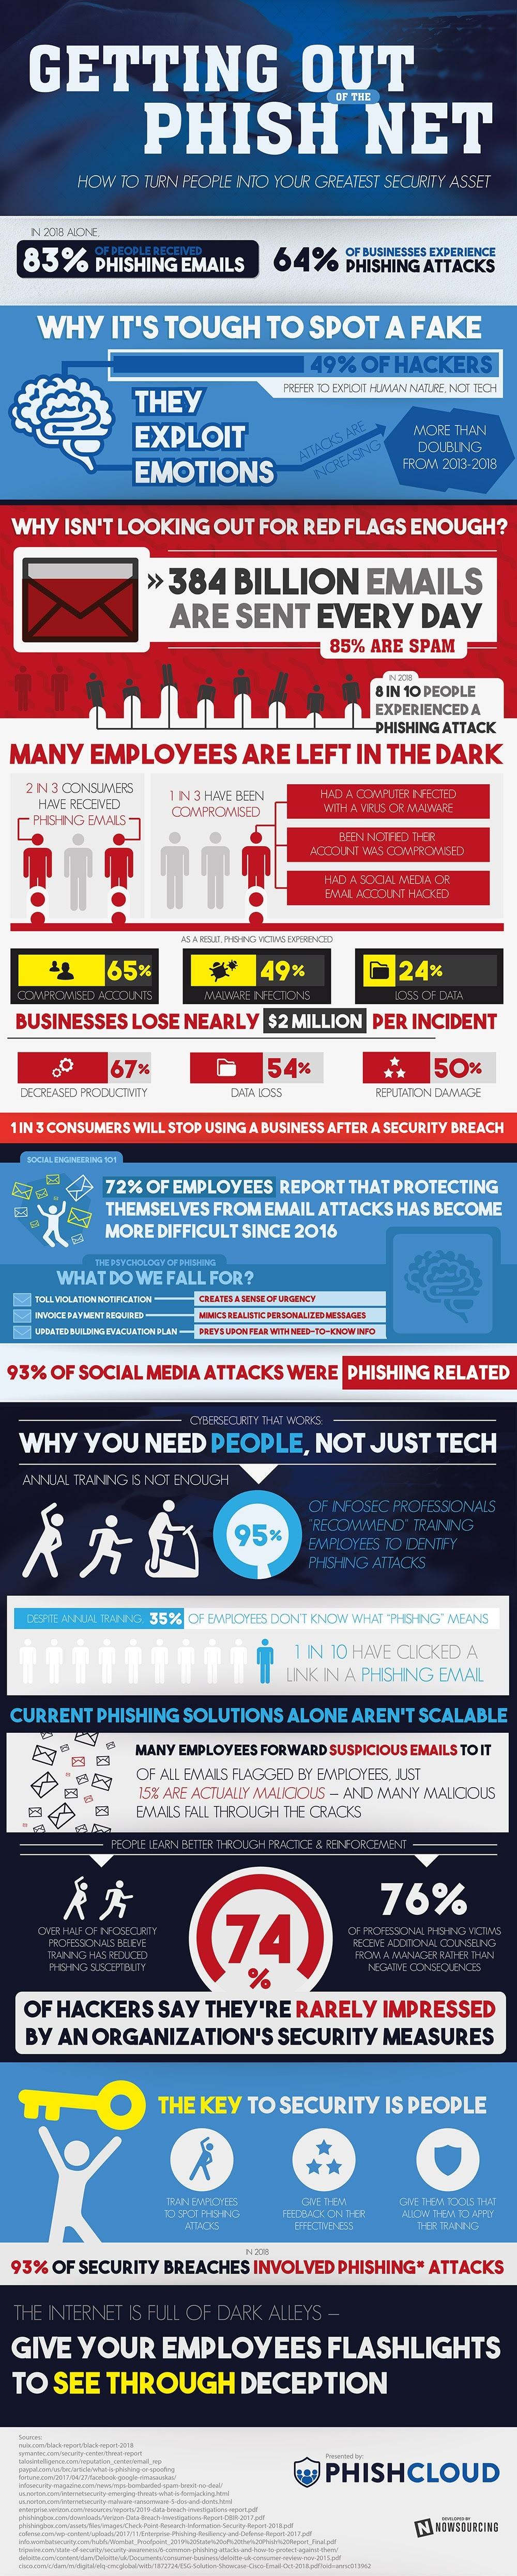 Getting Out Of The Phish Net #infographic